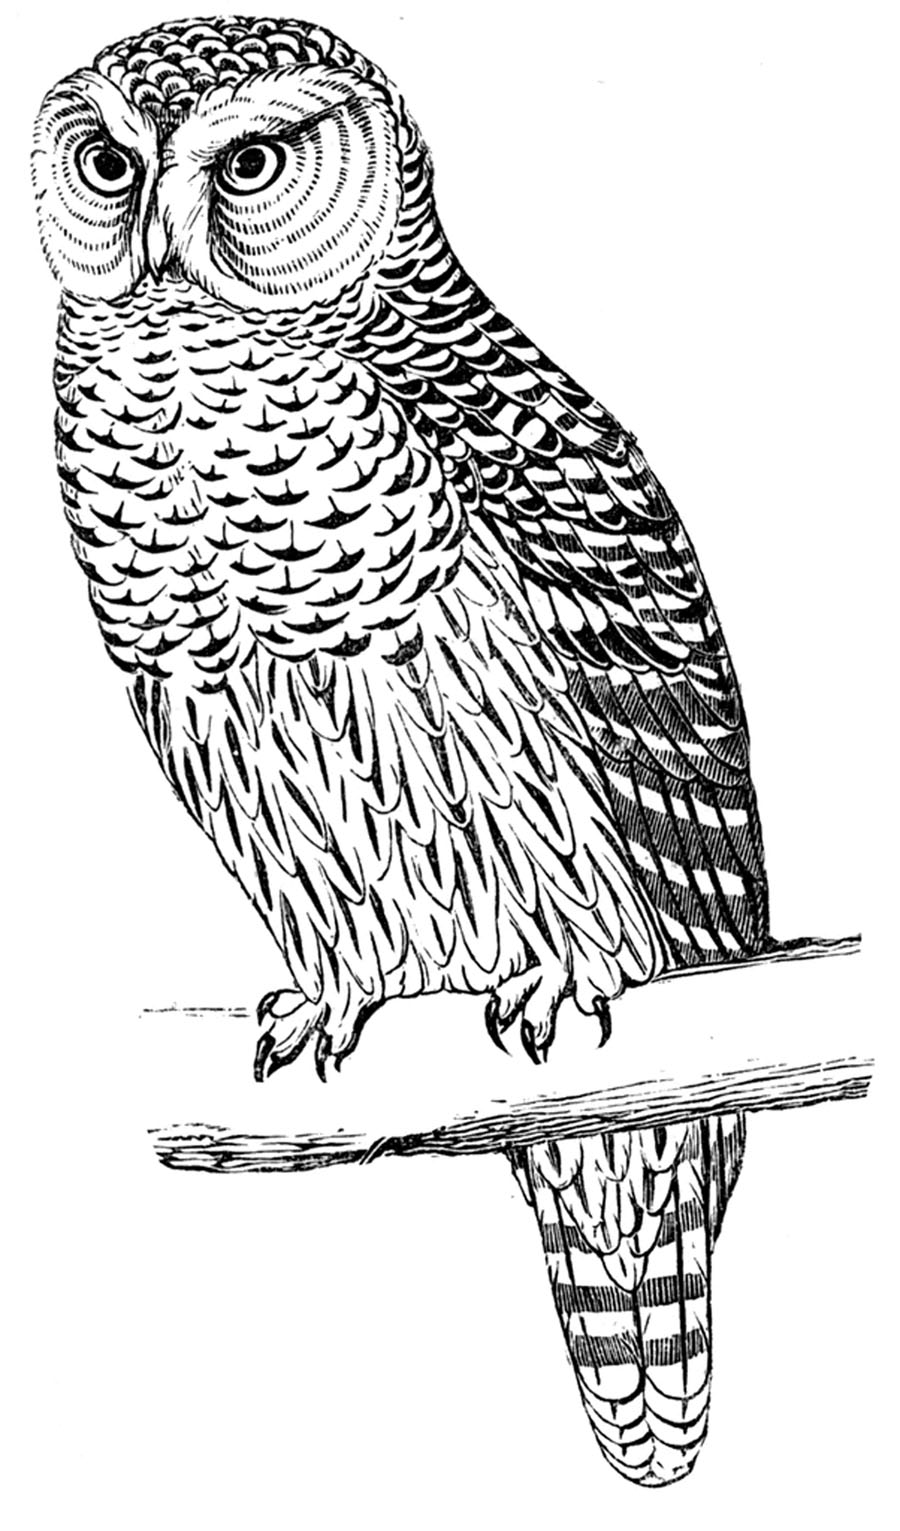 retro owl coloring pages | **FREE ViNTaGE DiGiTaL STaMPS**: Free Digital Stamp - Owl ...